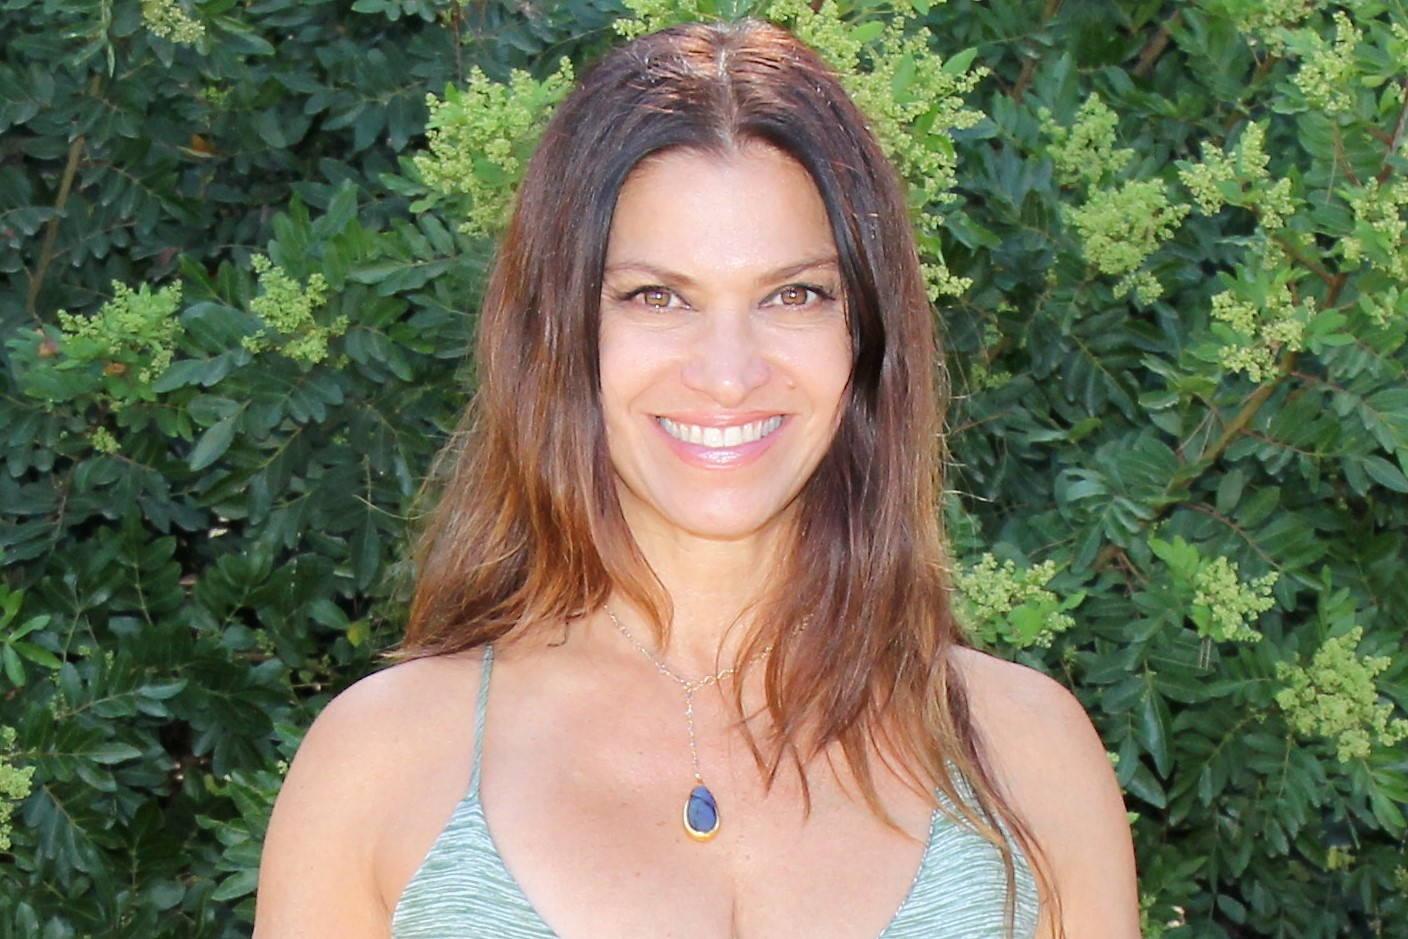 "Jennifer Savino   A facilitator of health and wellness for spas, resorts, studios and corporate wellness programs. Jennifer is the founder of Glo, as well as the author of "" Your Breath Heals"". She is a KUNLUN apprentice and is certified in Hatha Yoga, BASI Pilates and as a Prana breath work facilitator."